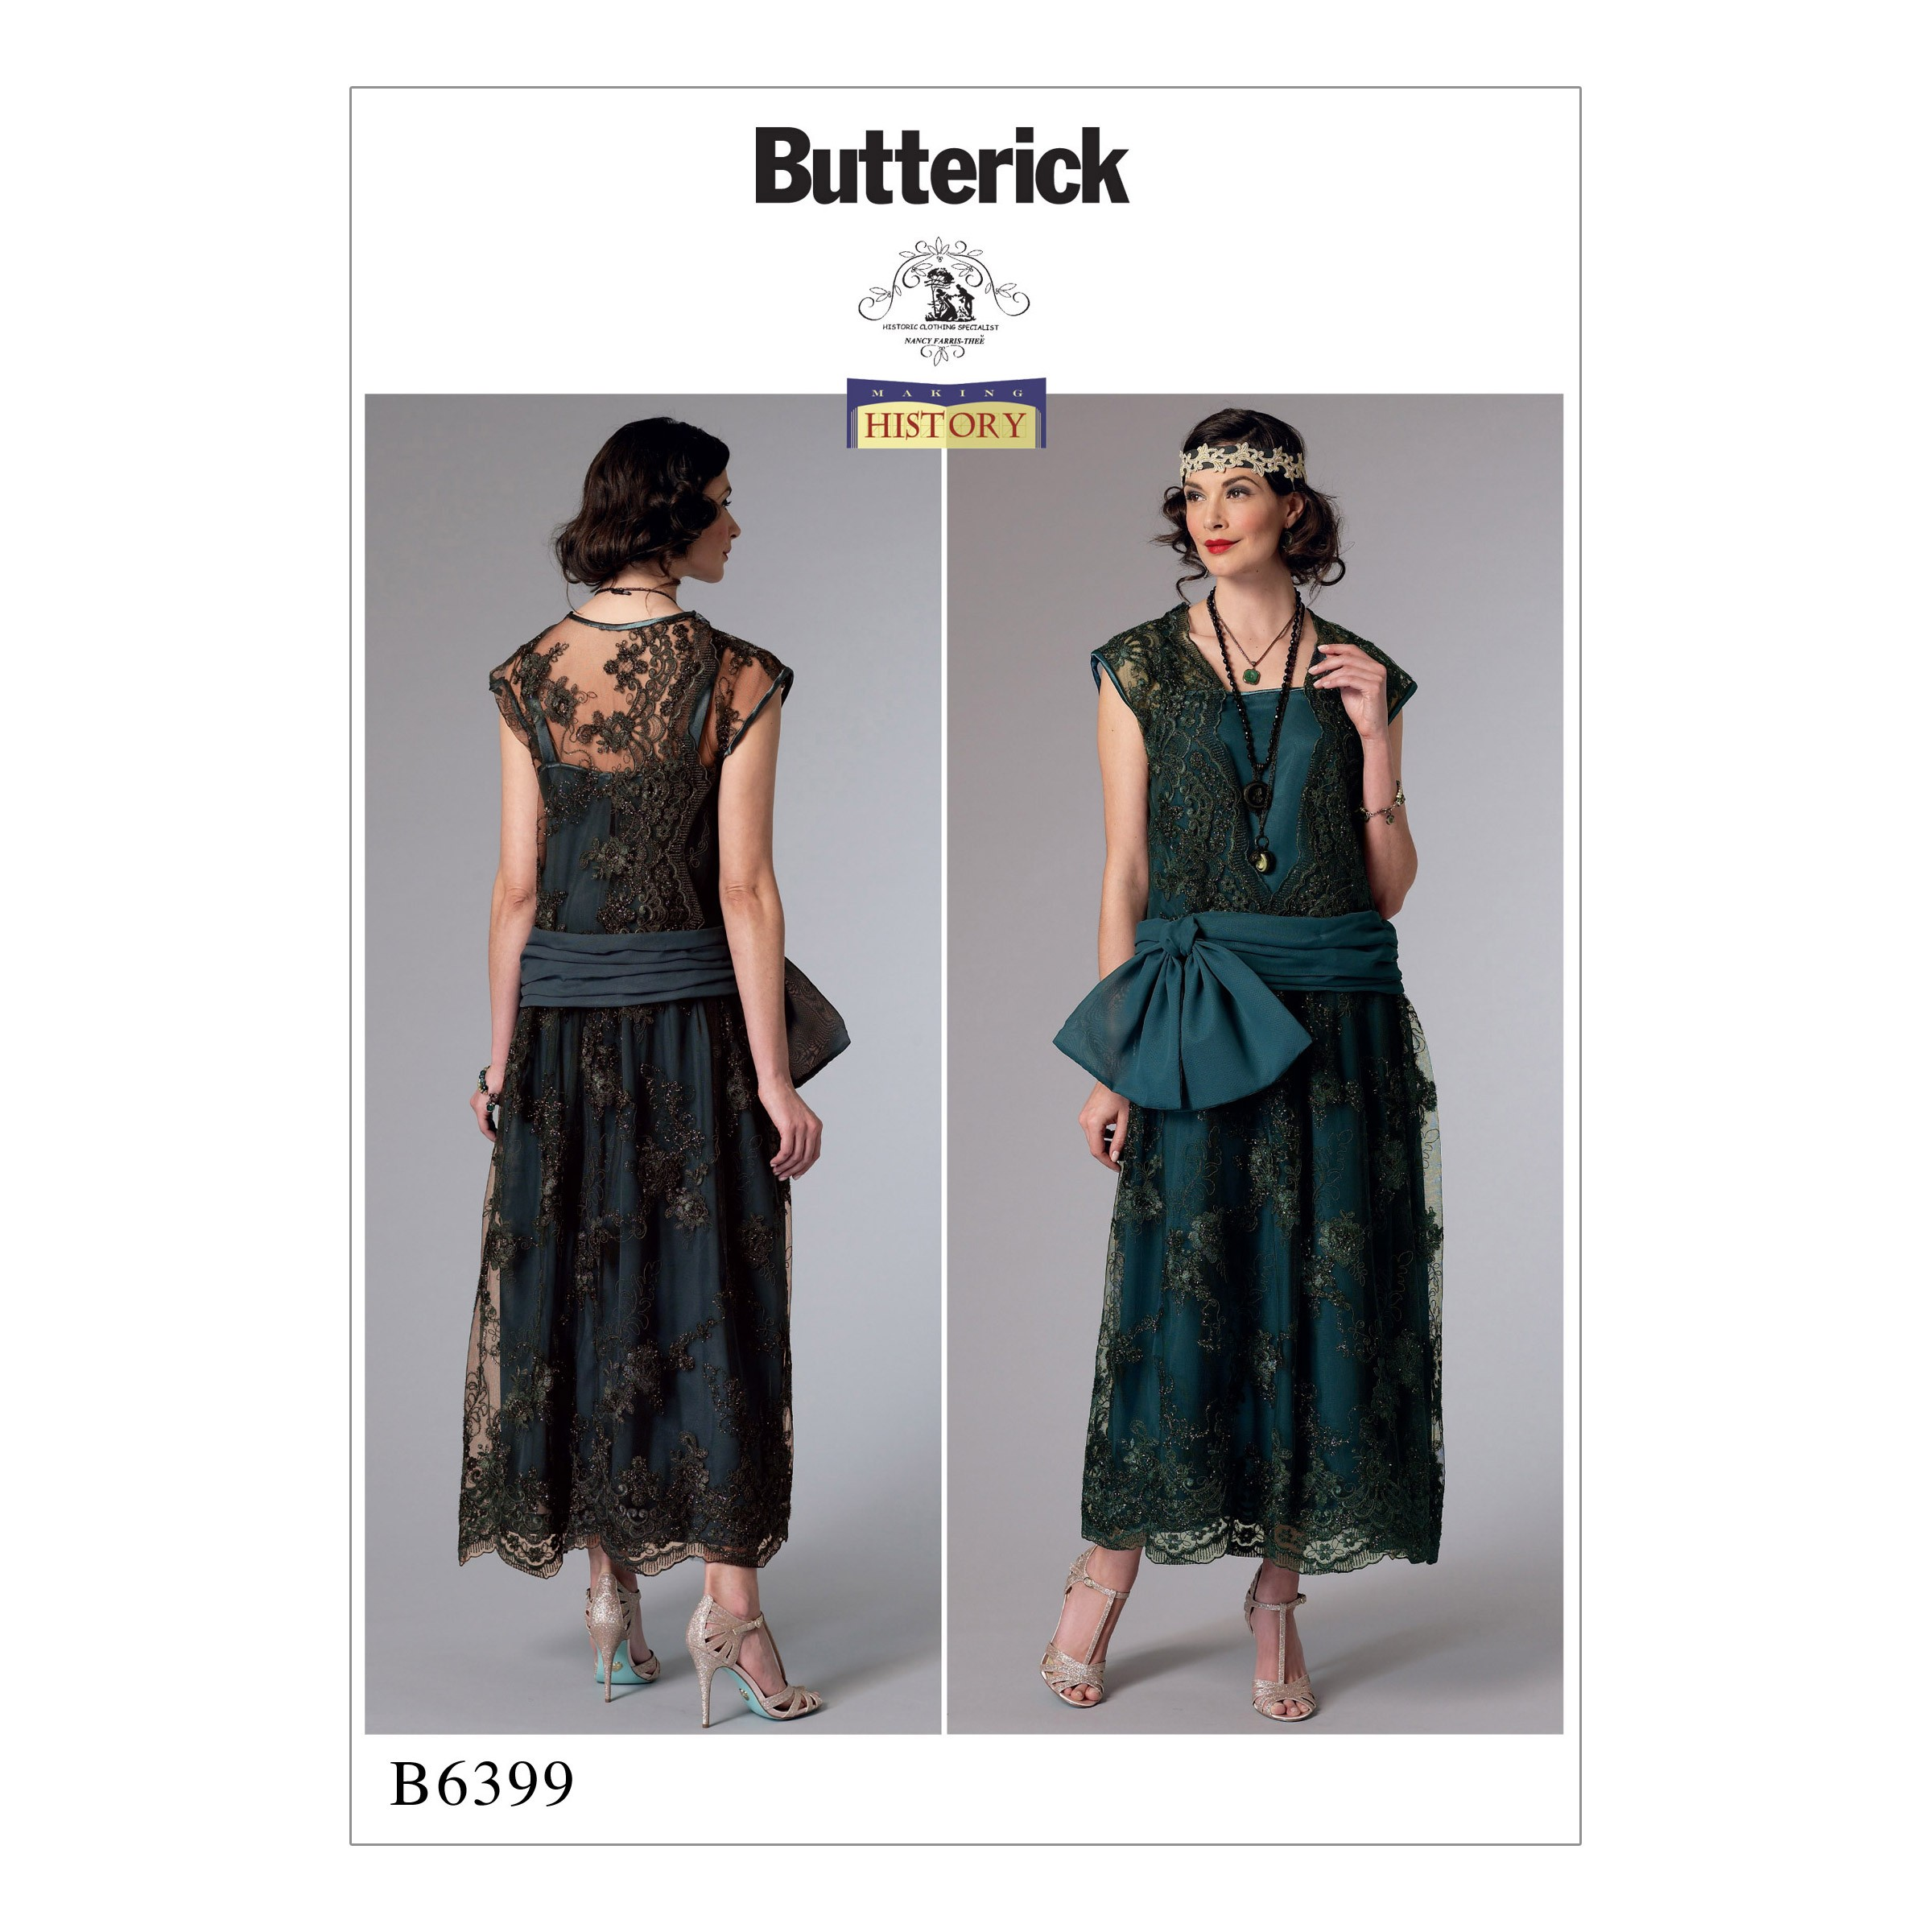 Butterick Sewing Pattern 6399 Misses' Drop Waist Dress With Oversized Bow